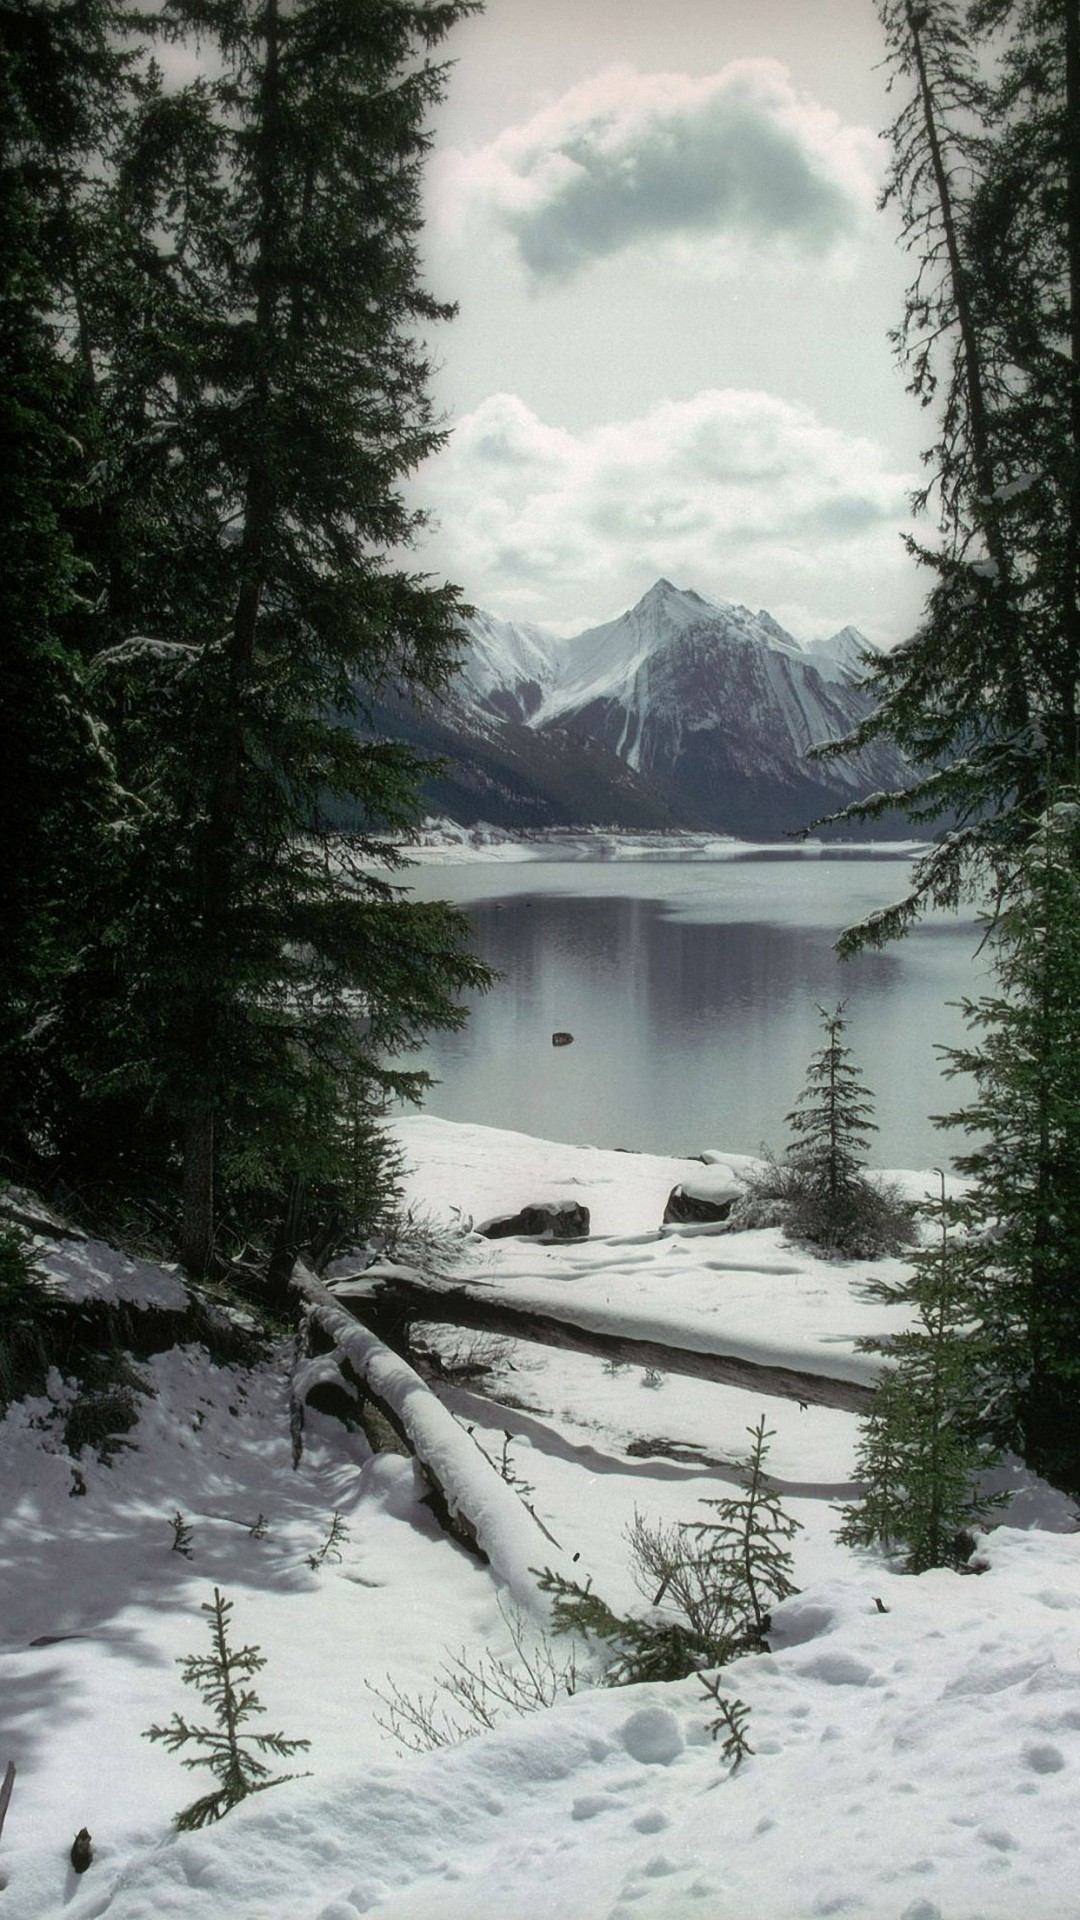 Free Download Winter Wallpaper for Iphone.